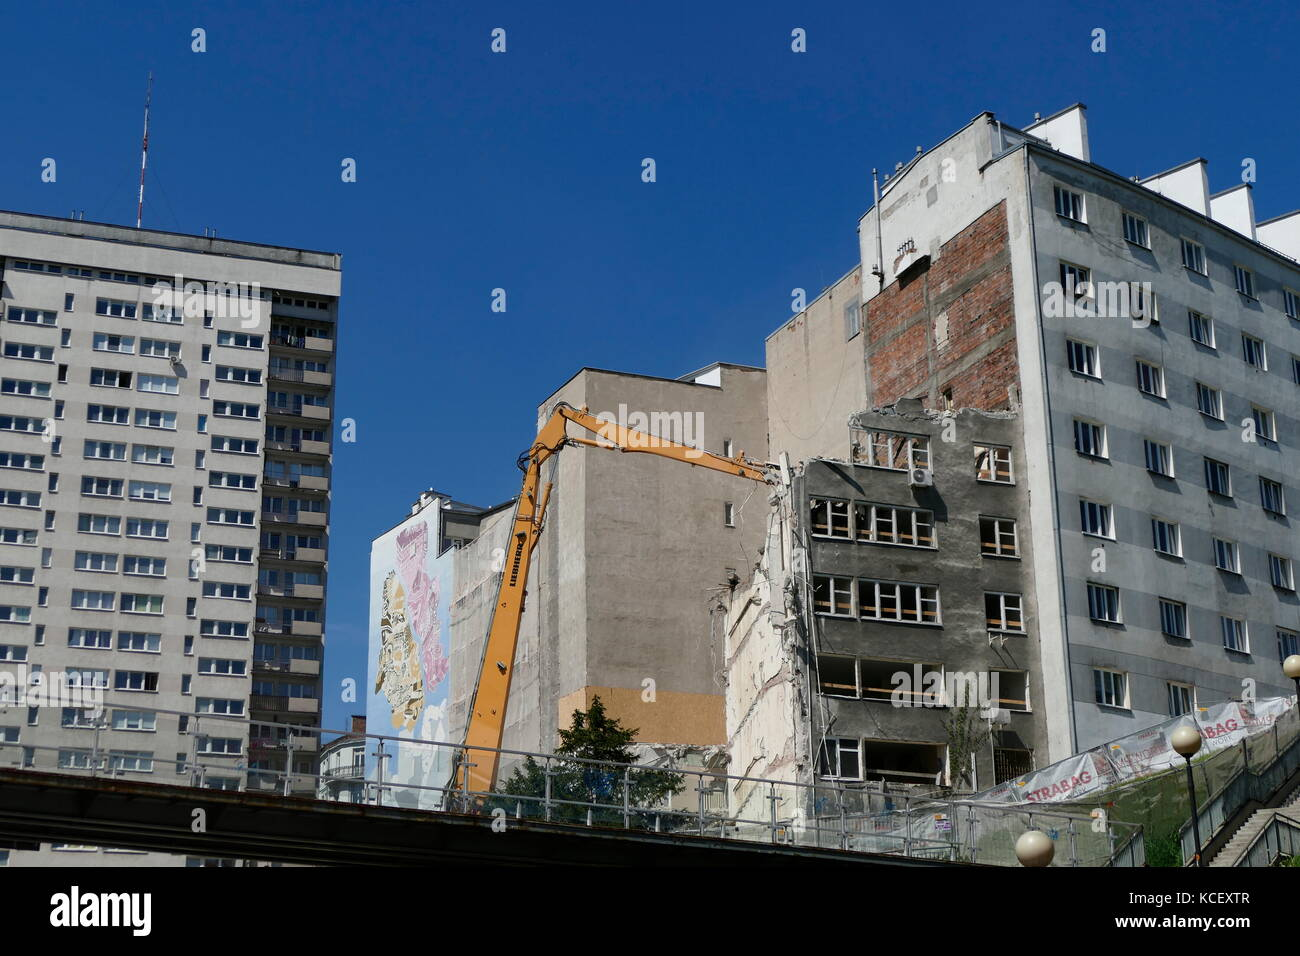 Demolition of communist era buildings and apartments in Warsaw, Poland. Dated 21st Century - Stock Image